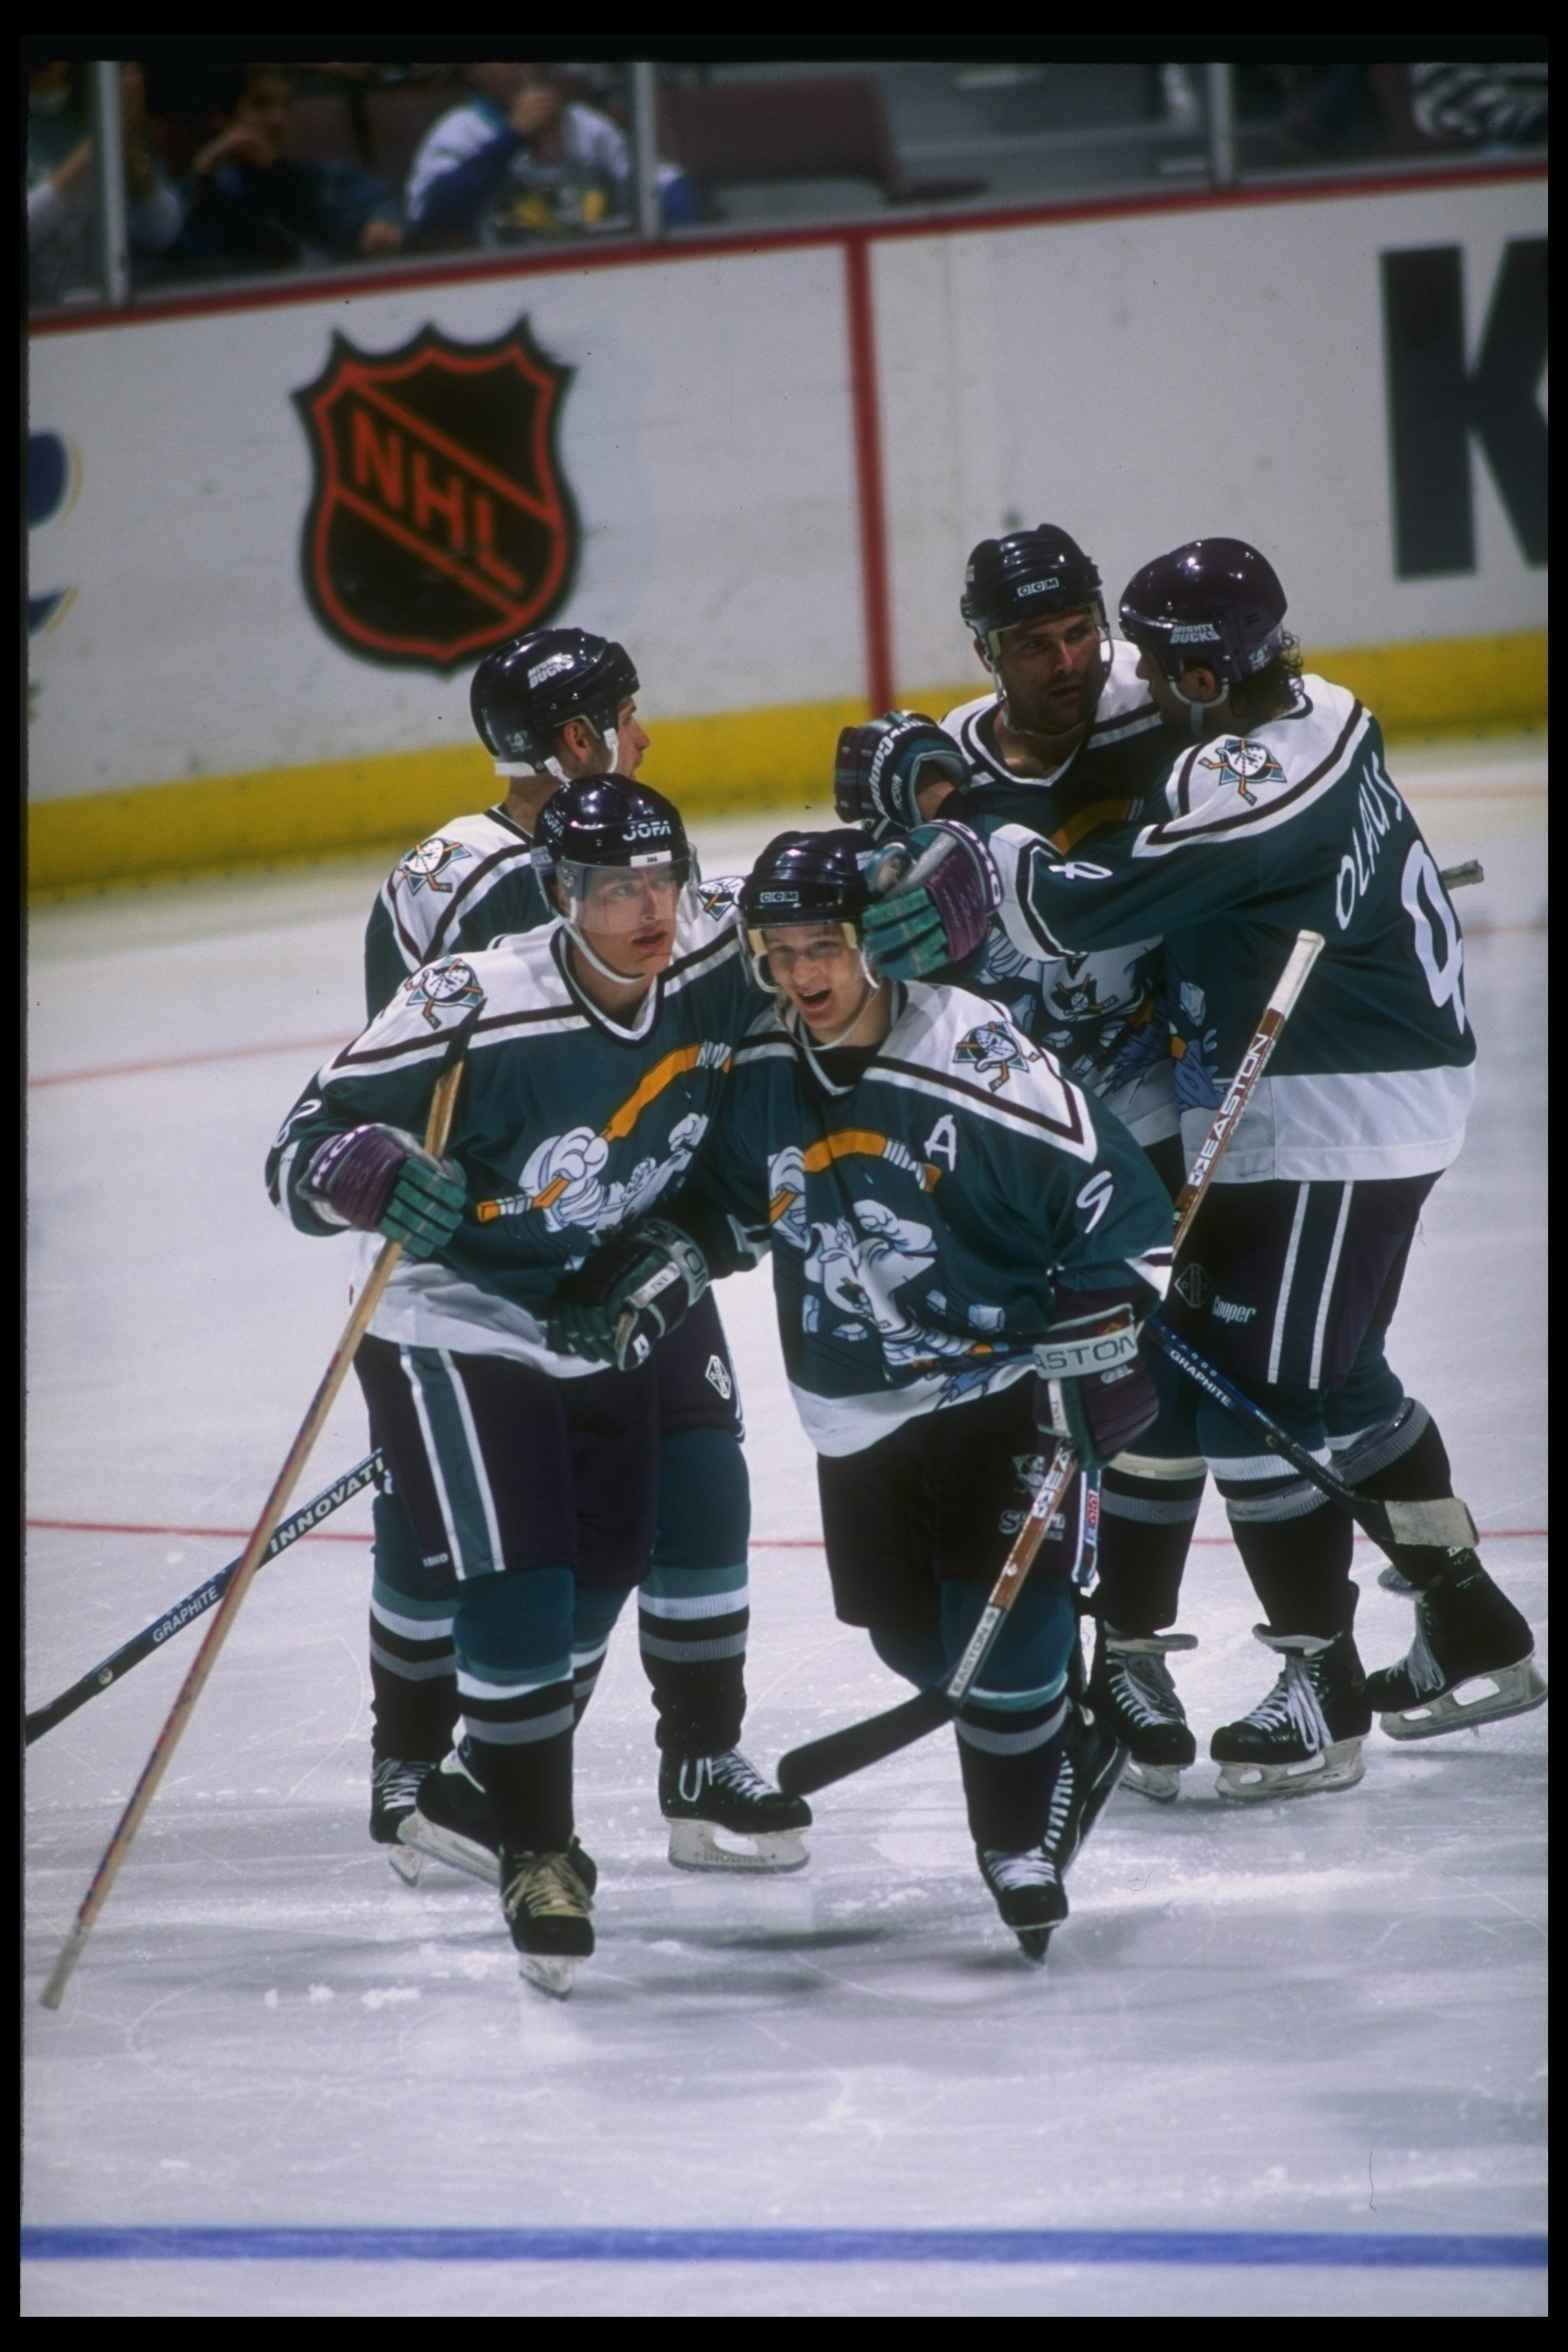 The Ducks look has come a long way since the first 'Wild Wing' alternate.